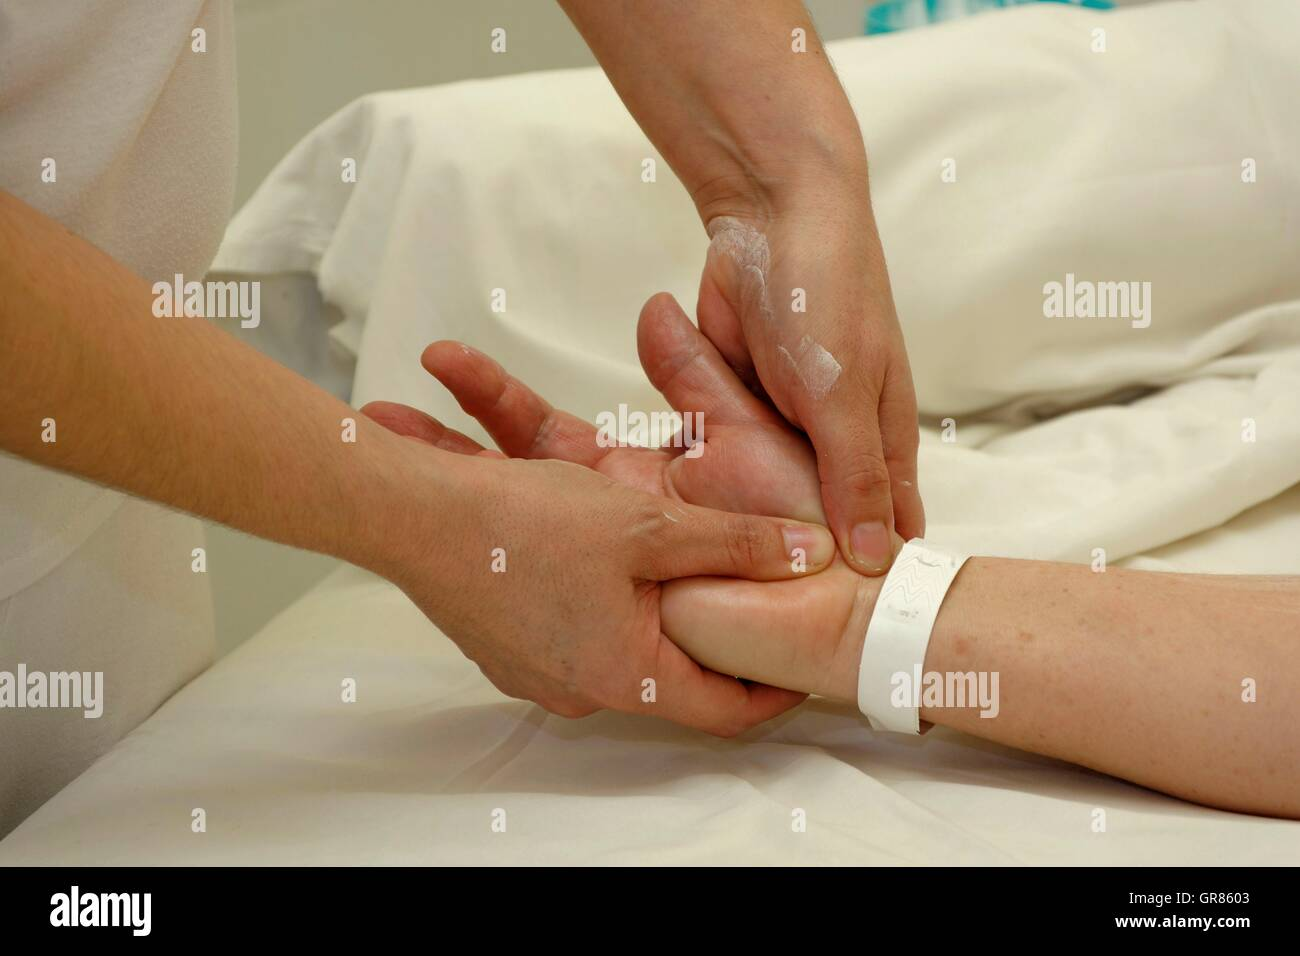 Hand Massage At The Spa Cegled - Stock Image